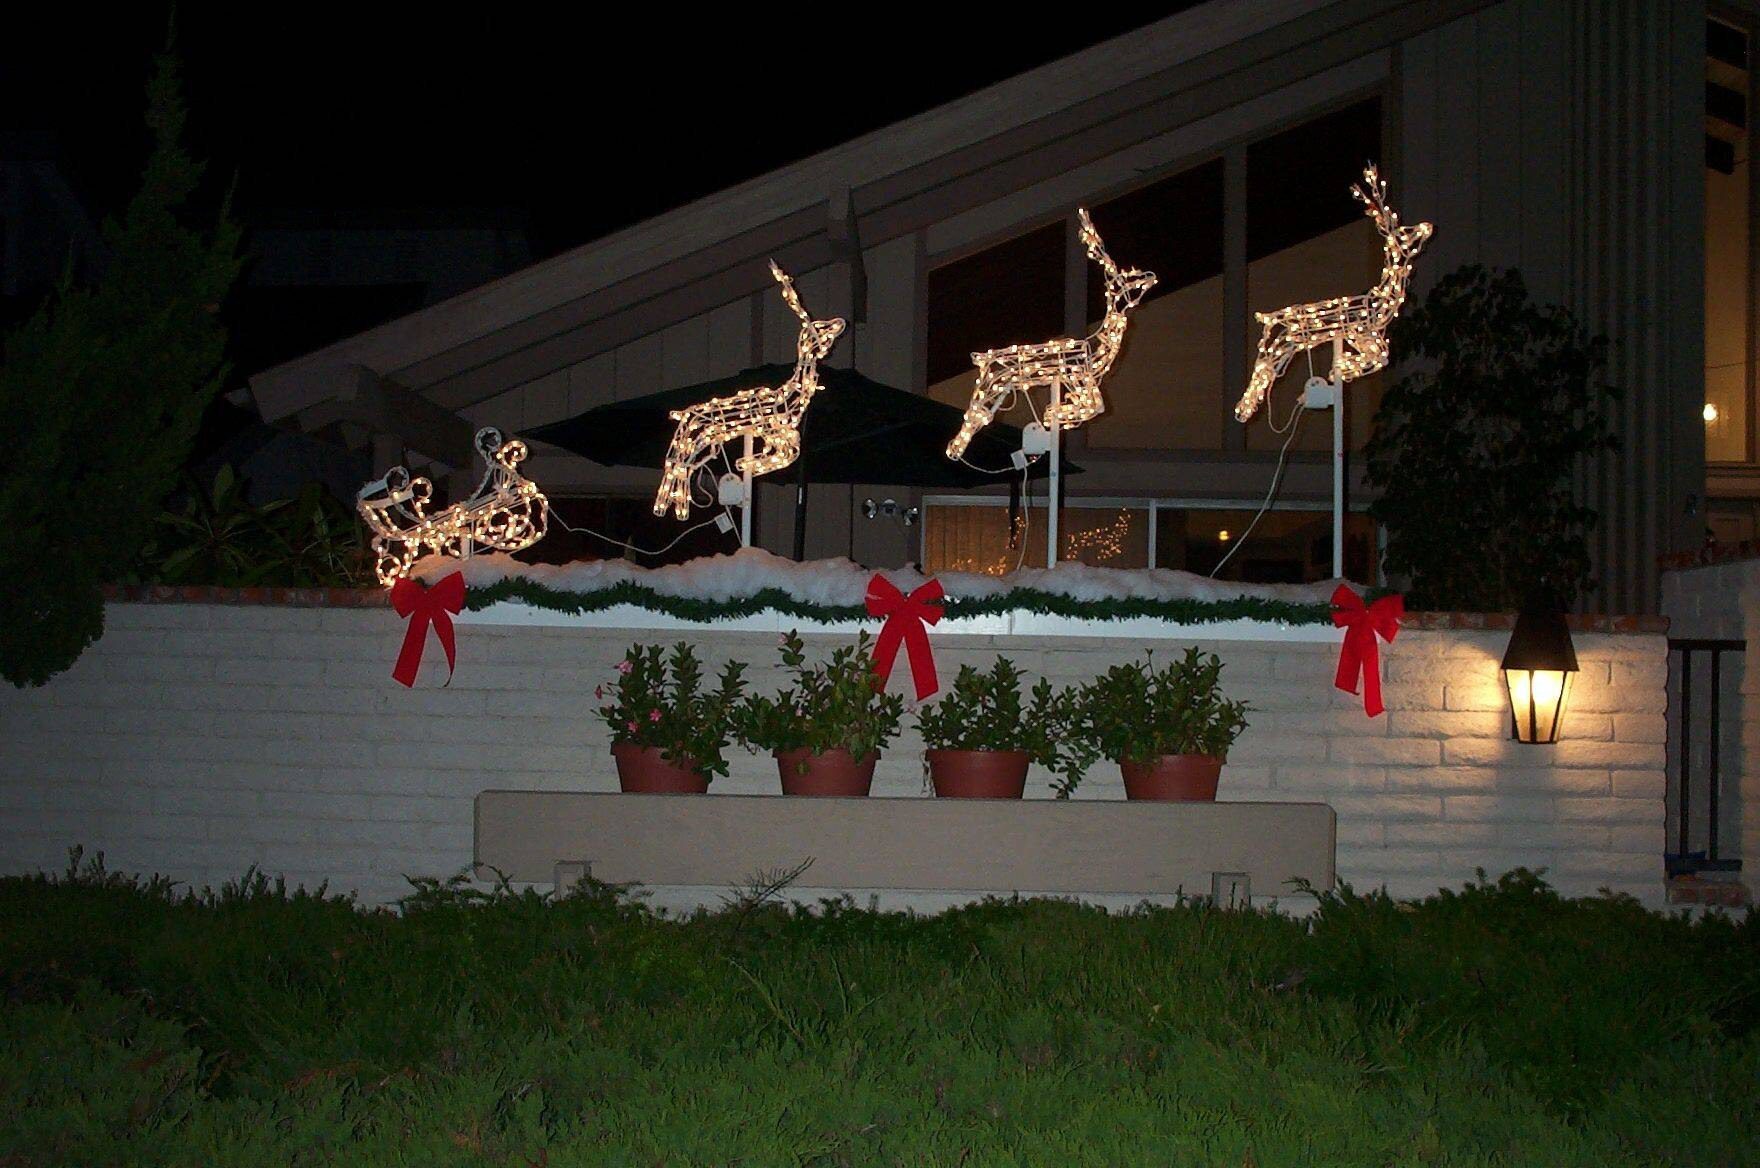 Outdoor Christmas Decorations On Sale  20 Outdoor Christmas Decorations Ideas for this Year MagMent